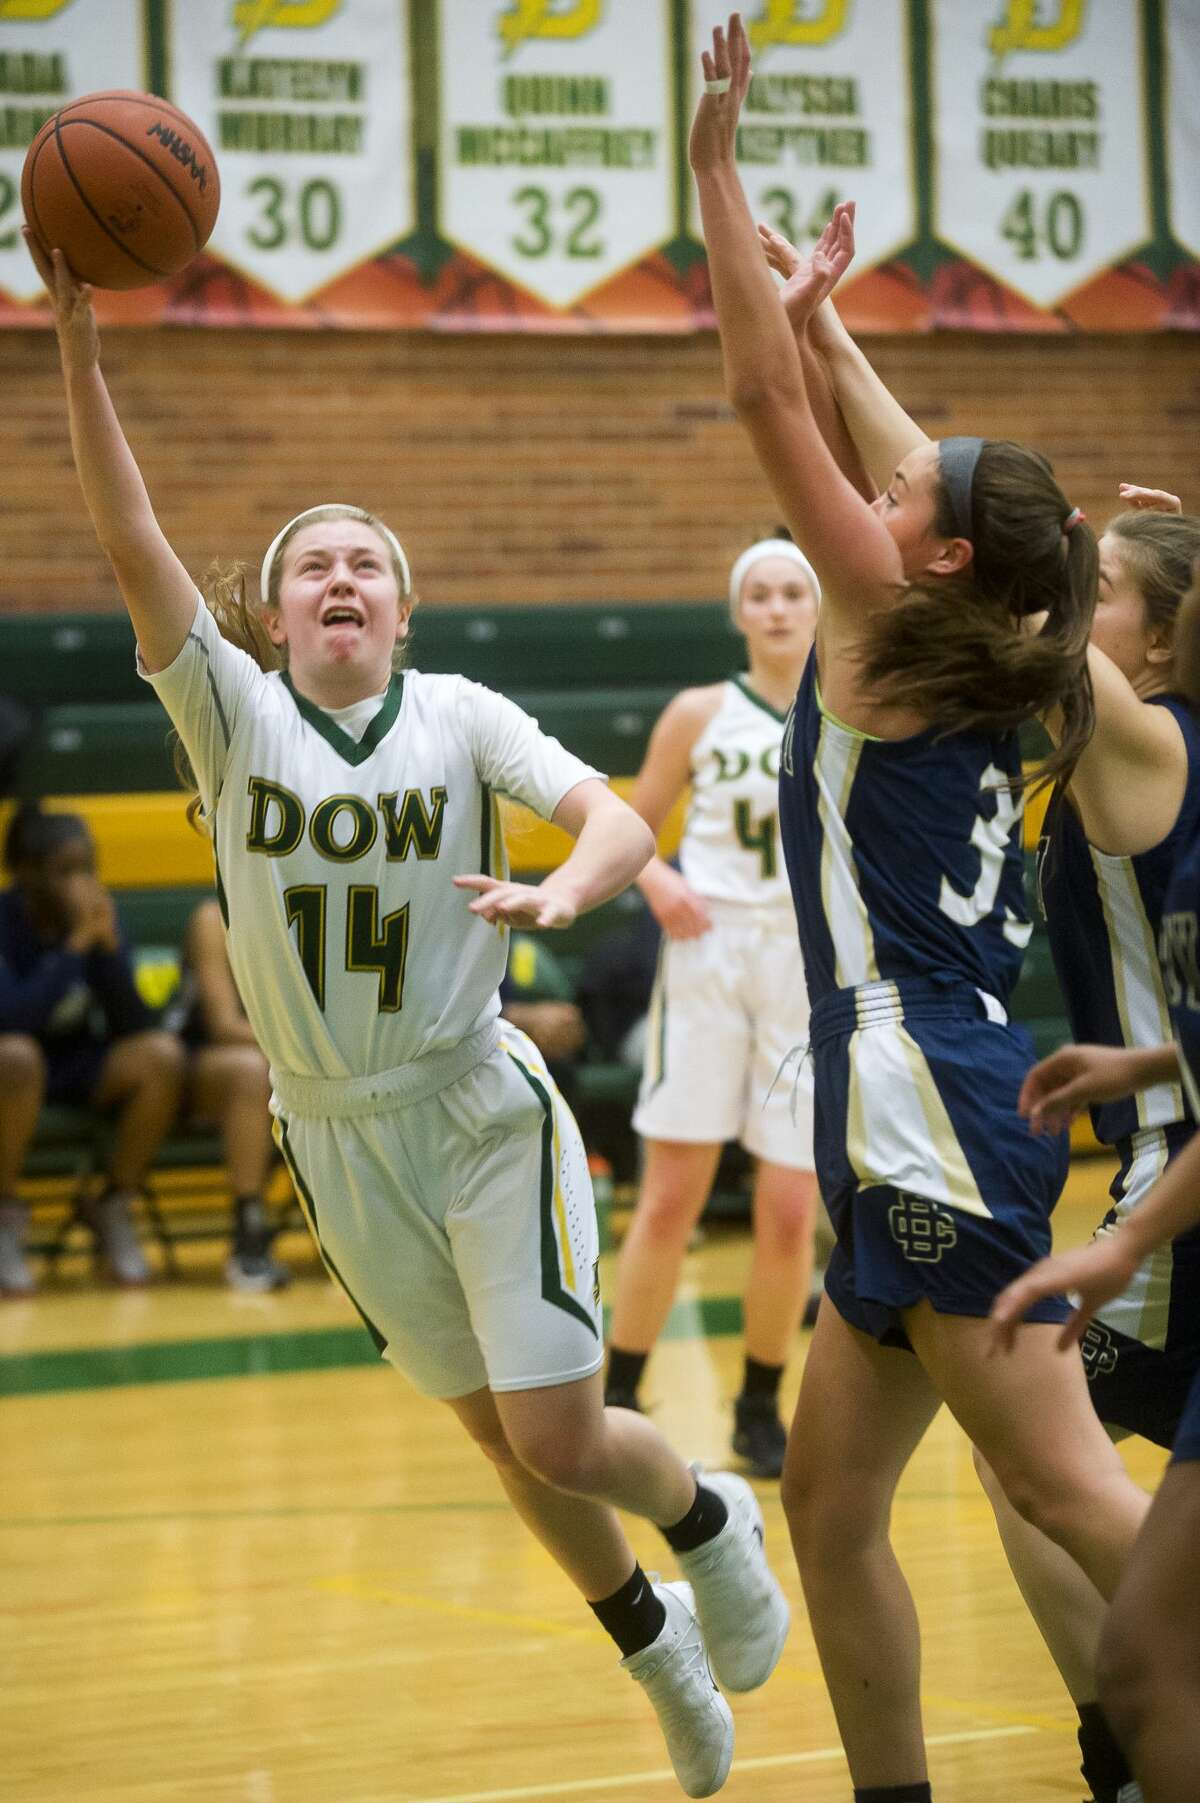 Dow junior Molly Davis takes a shot during the Chargers' game against Detroit Country Day on Friday, Dec. 22, 2017 at H. H. Dow High School. (Katy Kildee/kkildee@mdn.net)